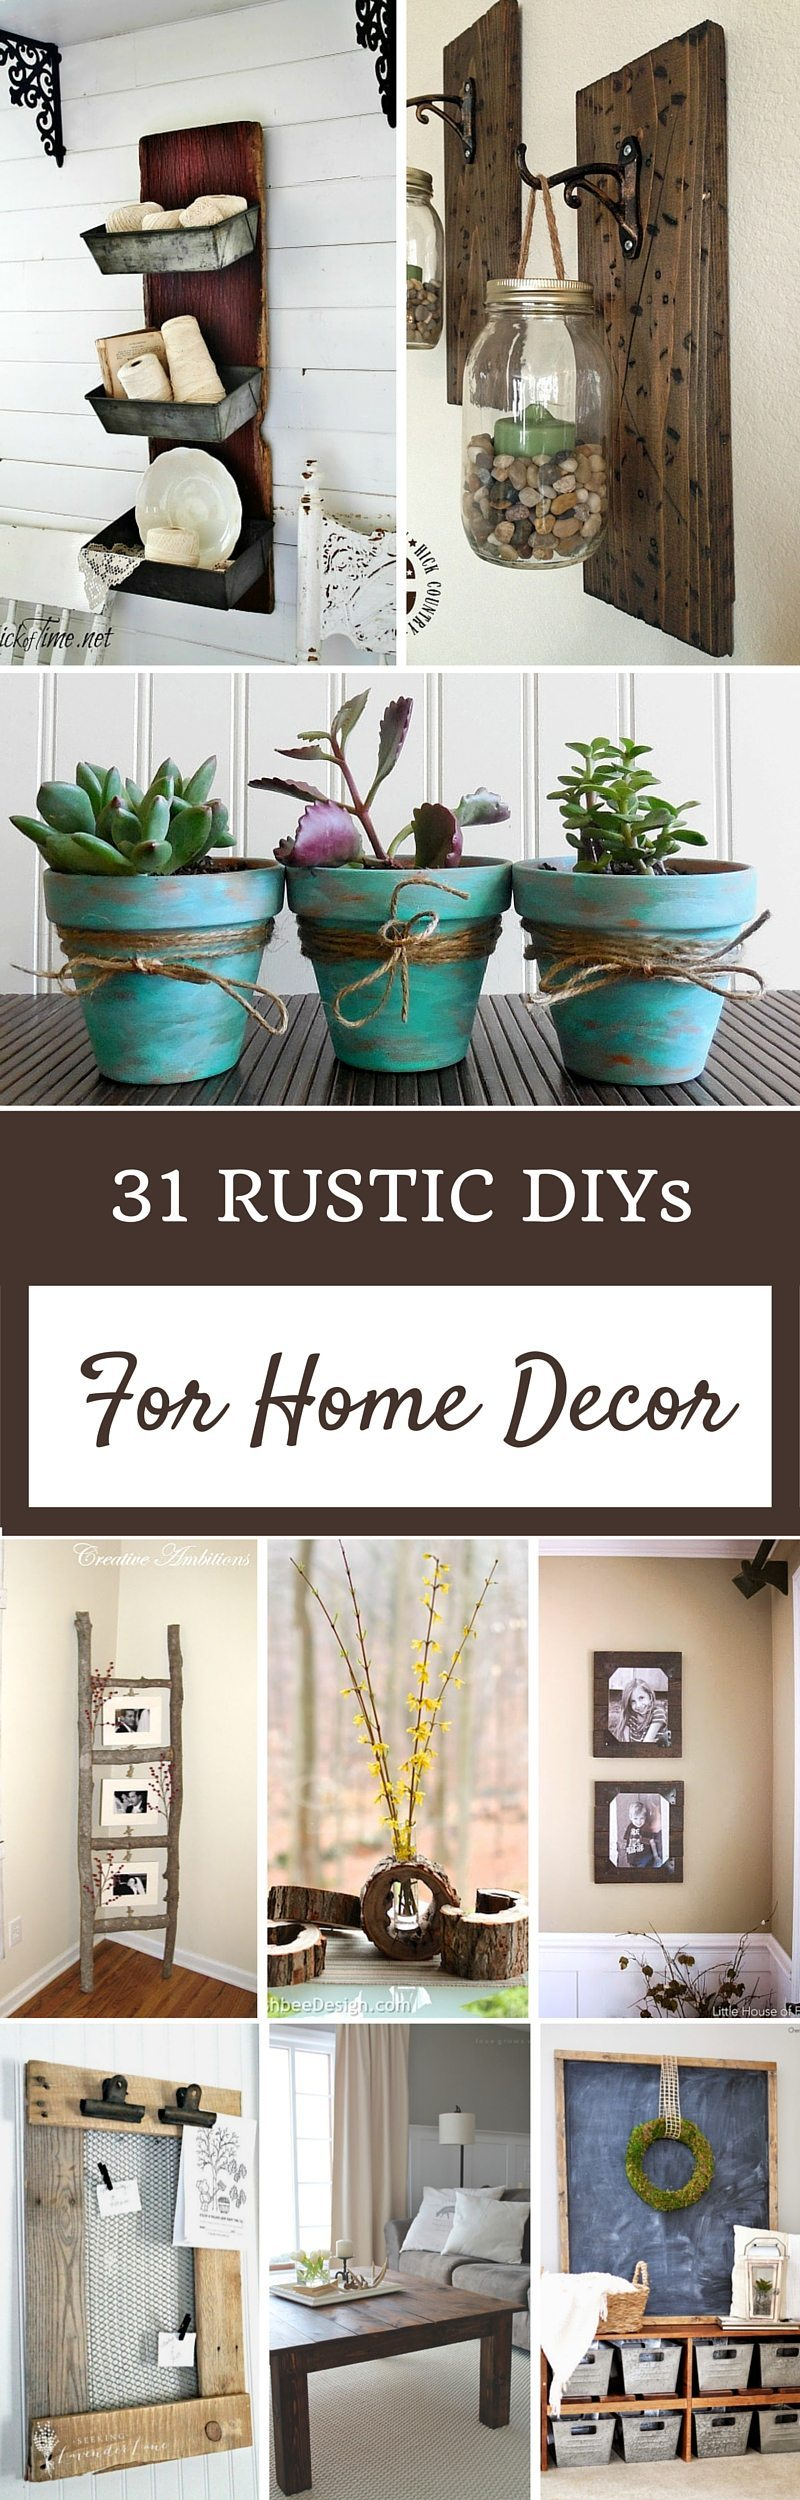 Rustic home decor ideas refresh restyle Home design ideas diy